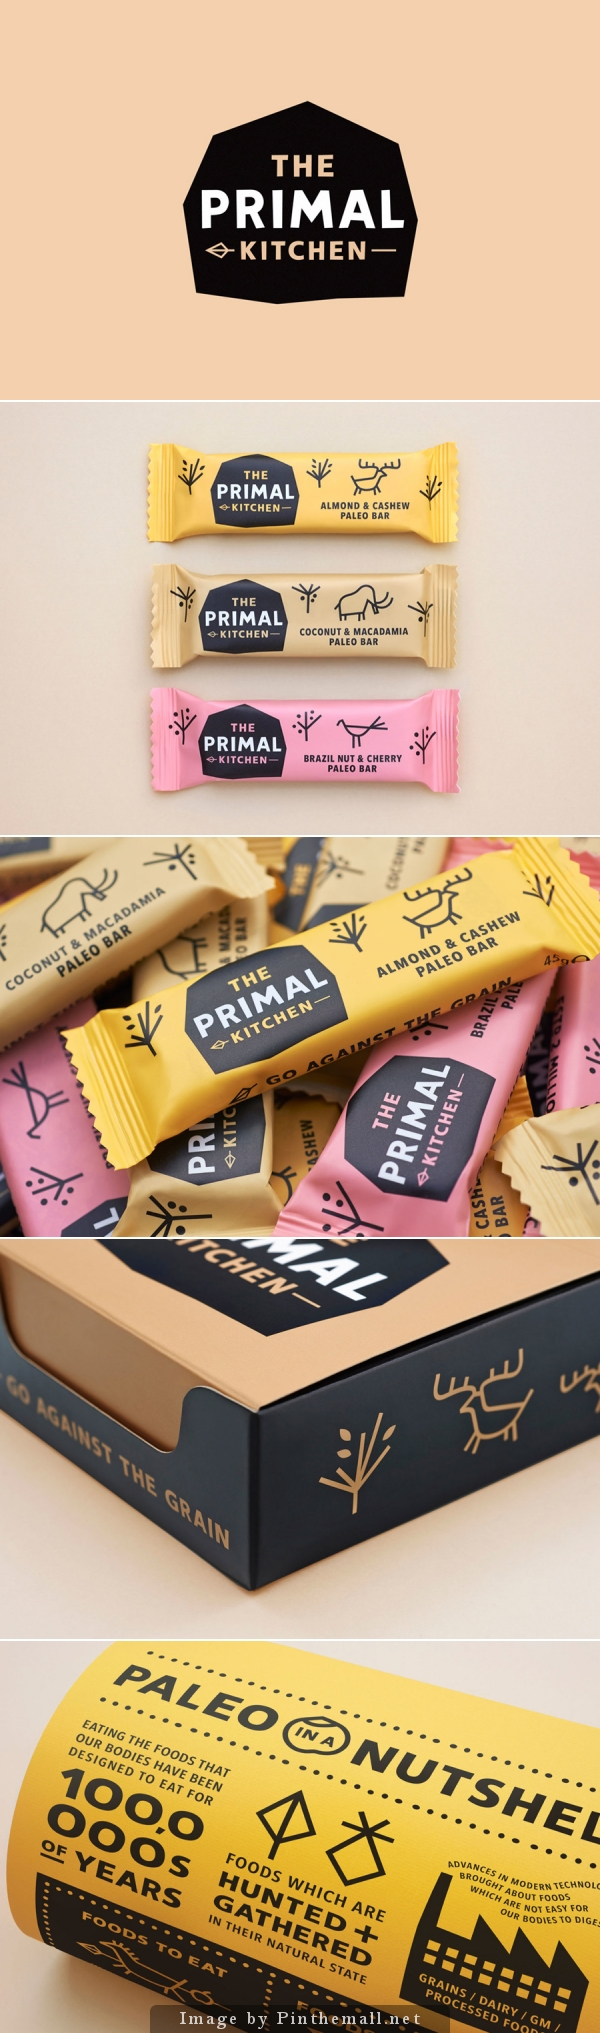 New Packaging For The Primal Kitchen By Midday Bp O Food Packaging Design Candy Packaging Brand Packaging